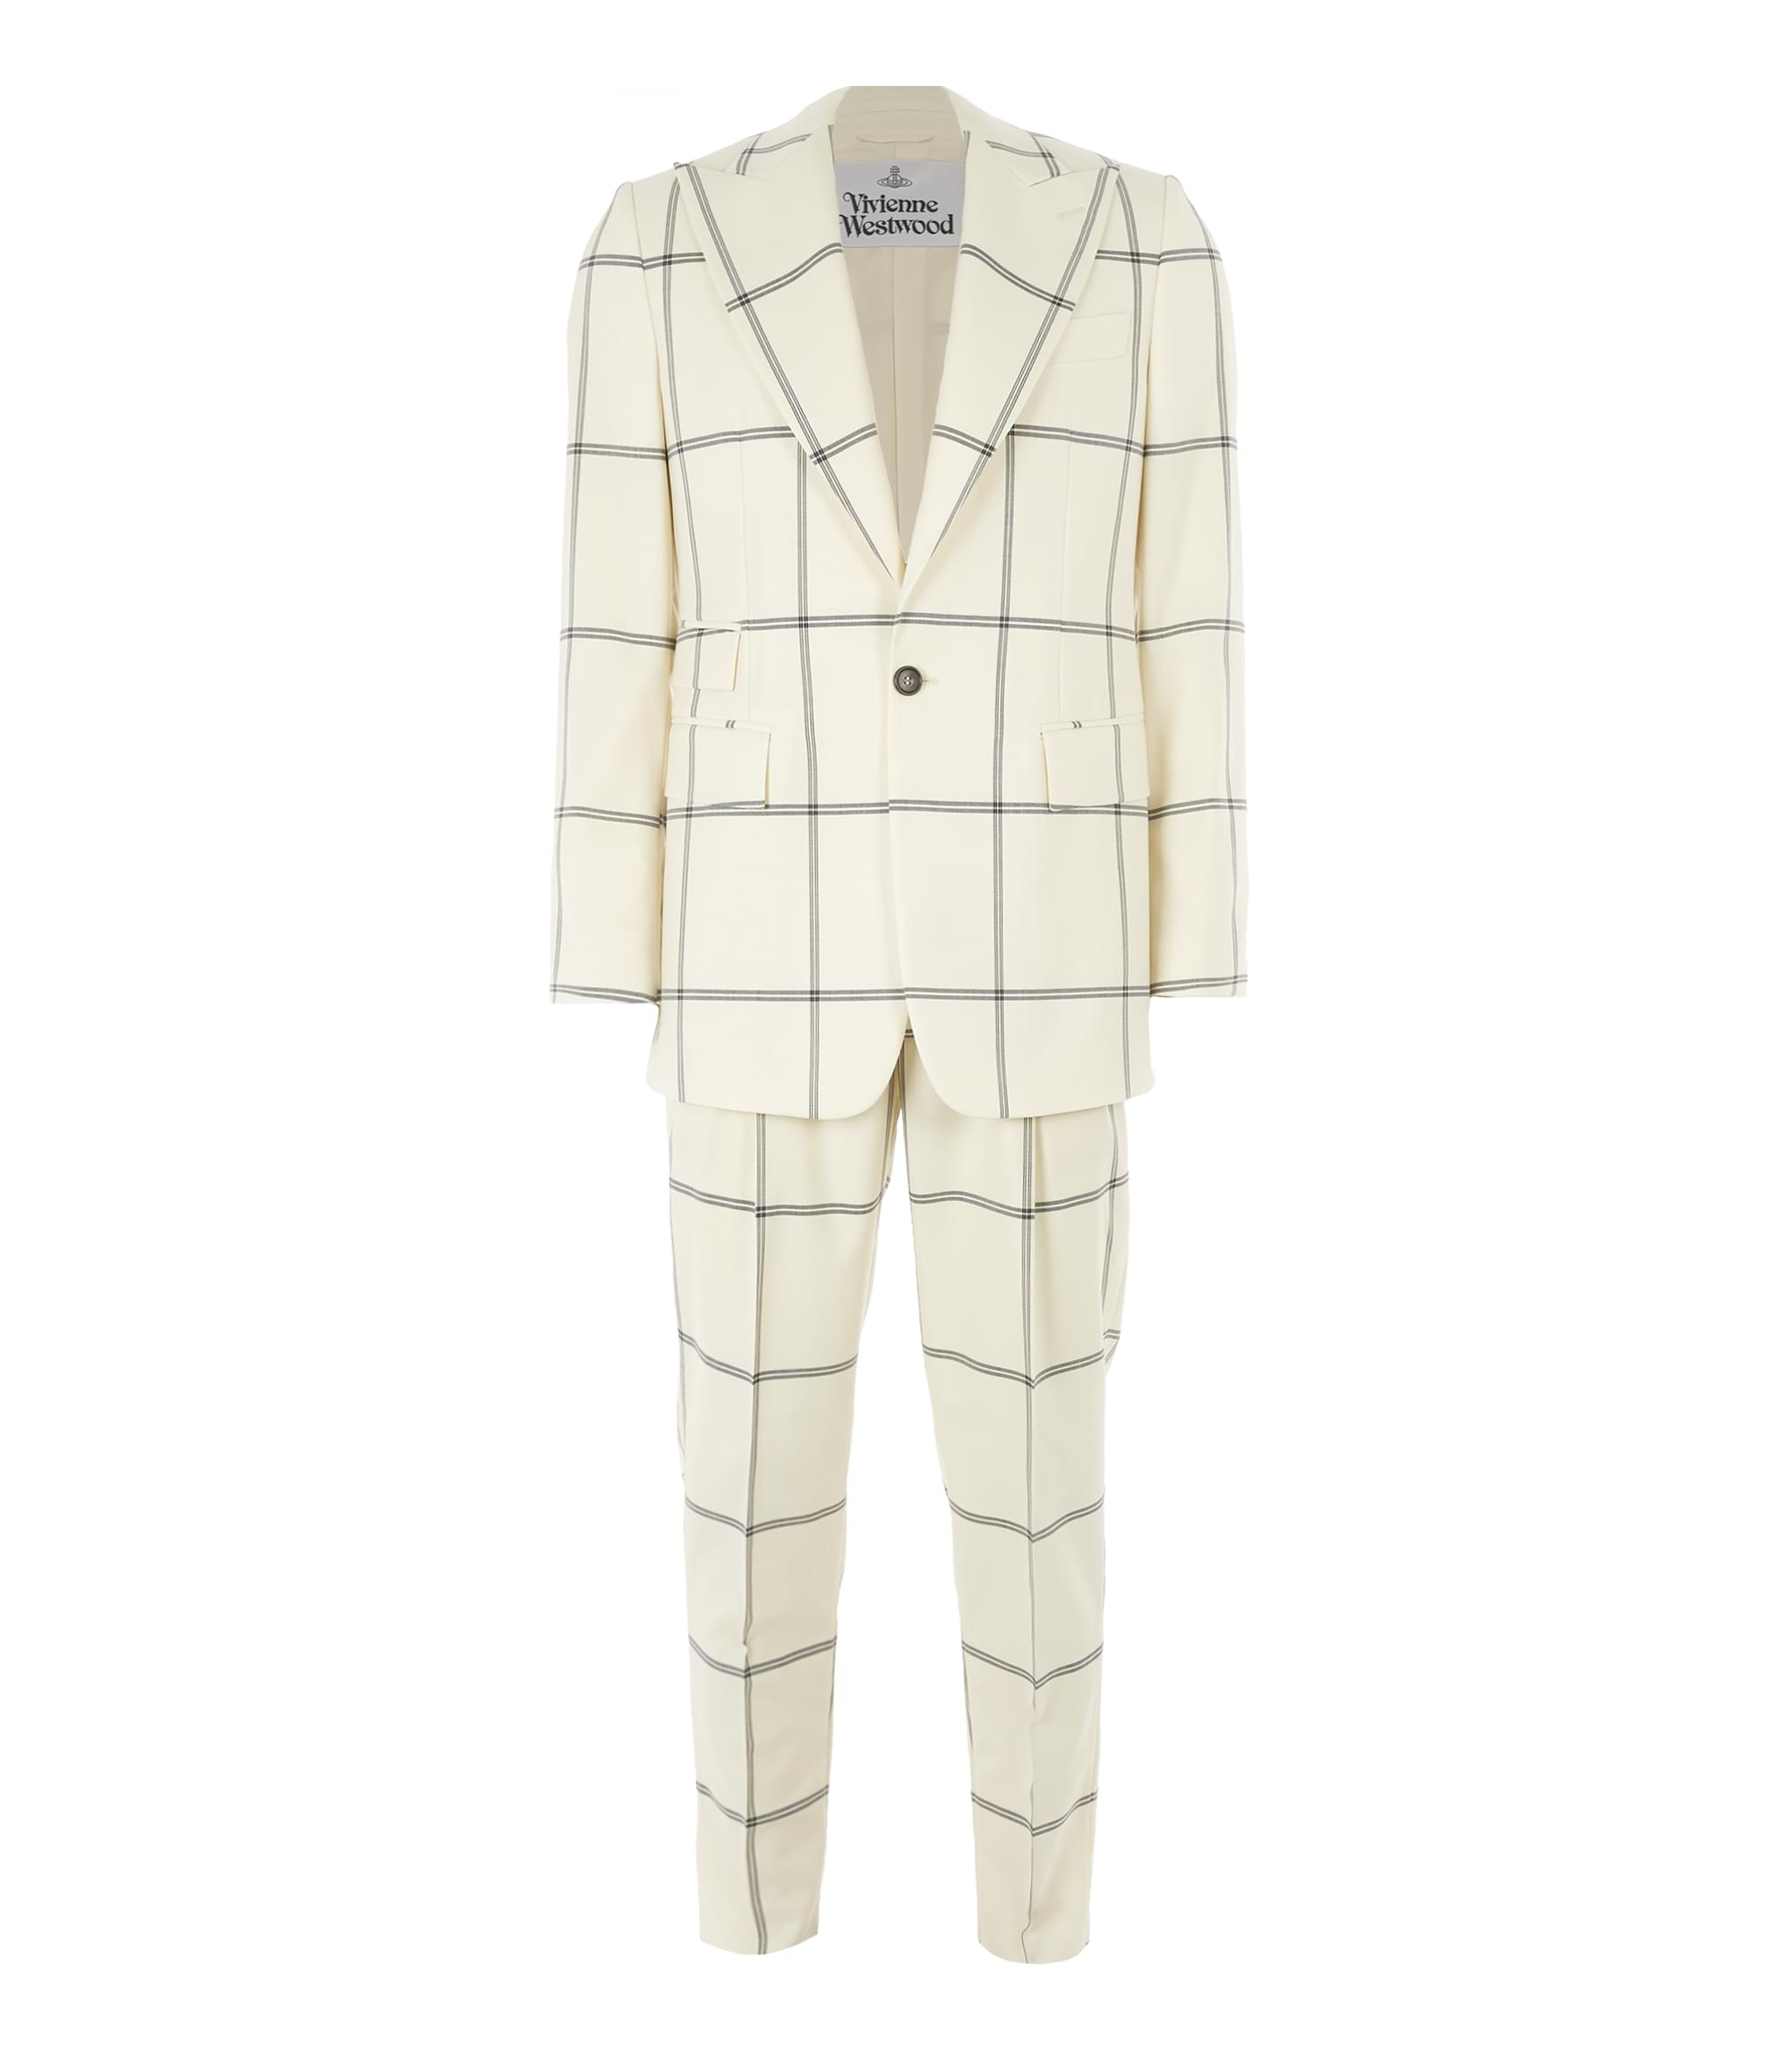 Vivienne Westwood Bayonet Suit White Check